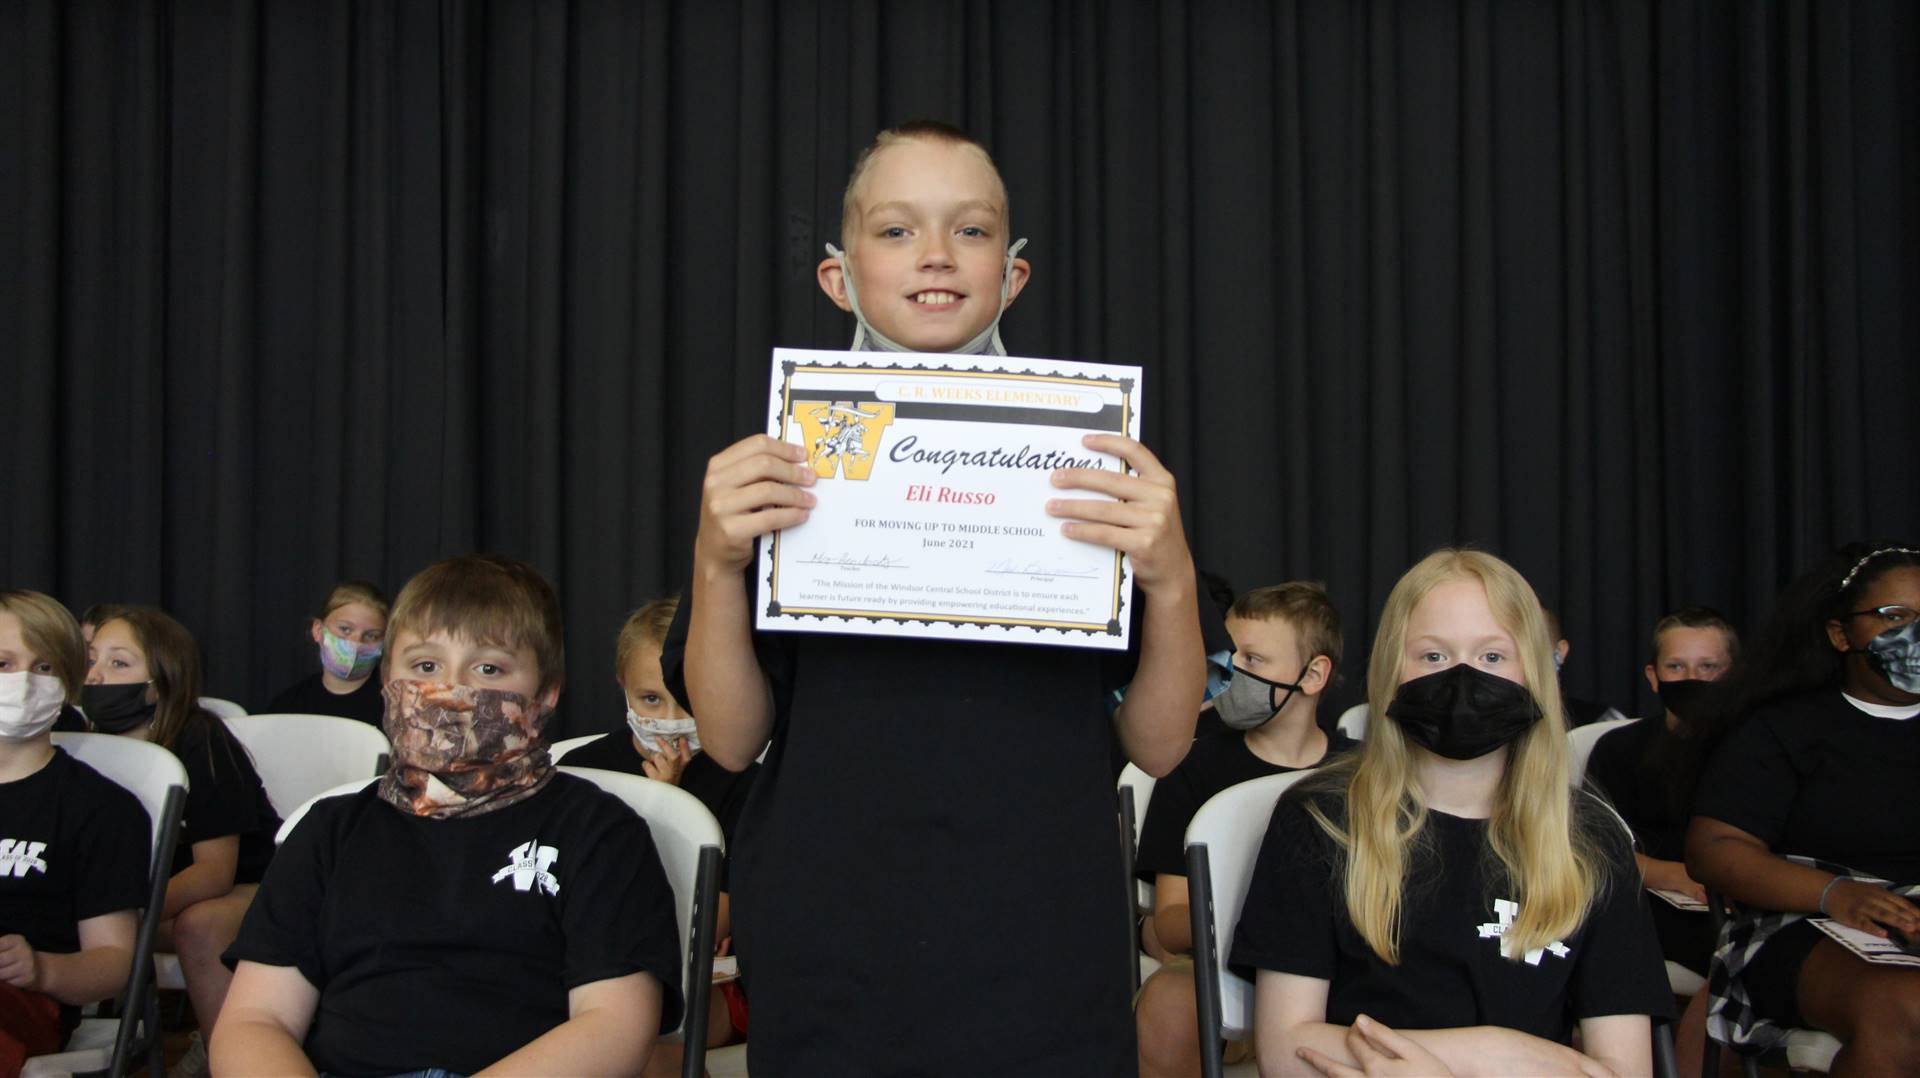 Young boy holding a certificate